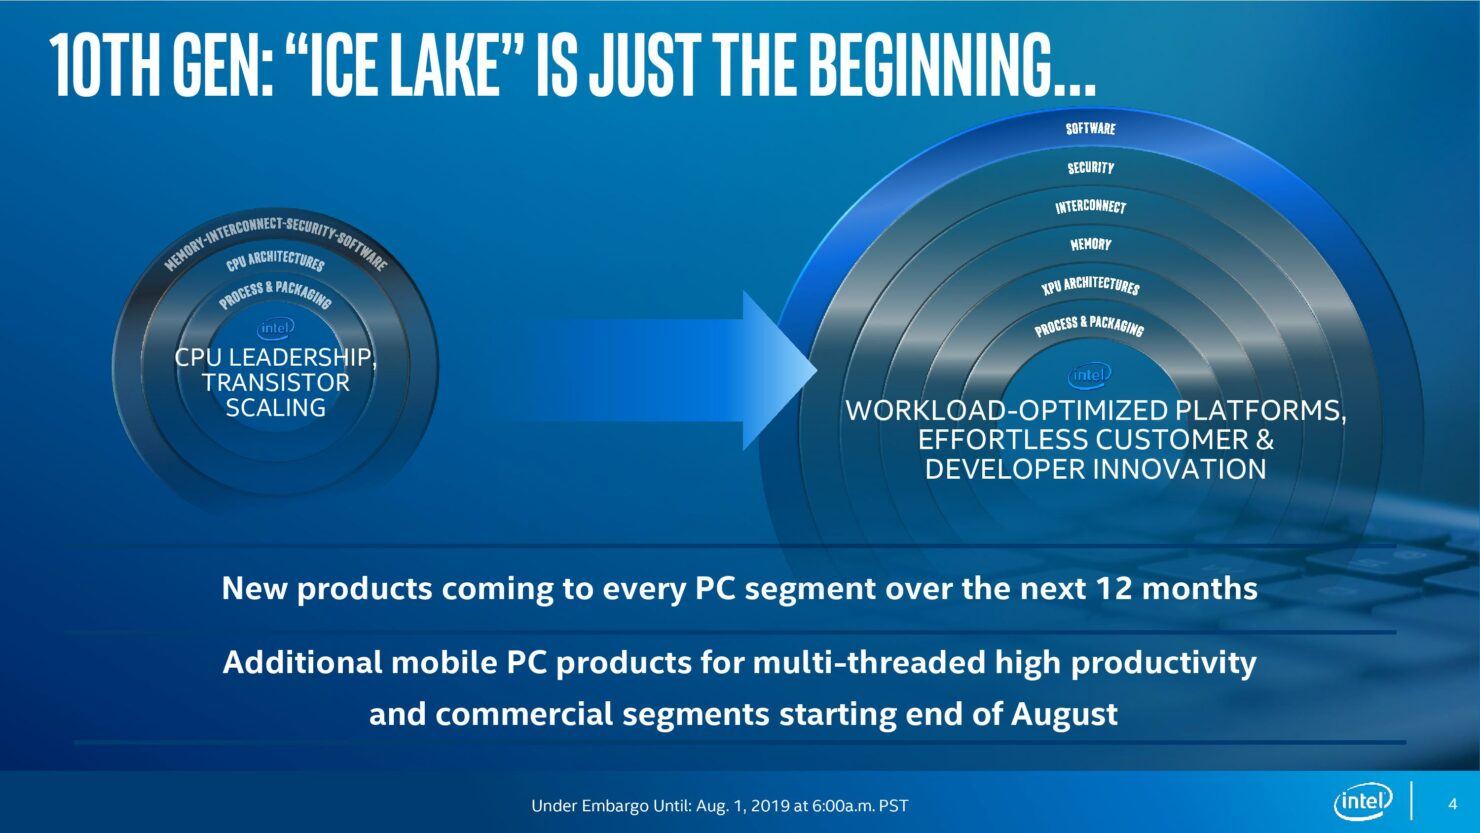 10th-gen-intel-core-processors_ice-lake-launch_under-embargo-until-aug-1-at-600am-pst111-page-004